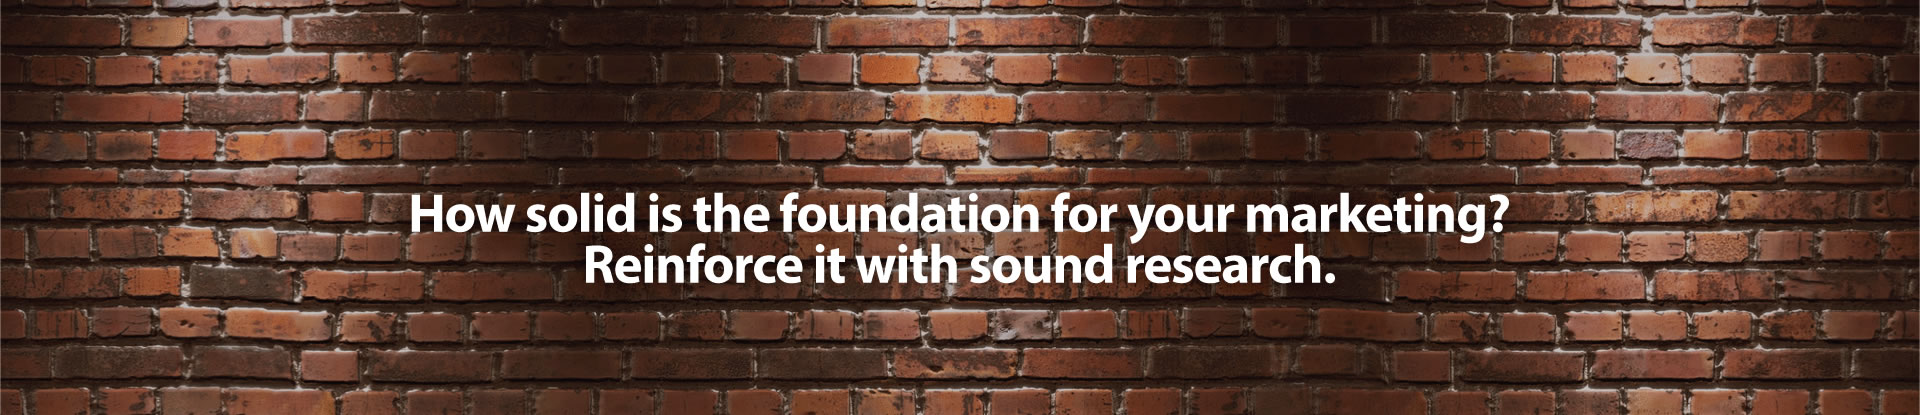 How solid is the foundation for your marketing?